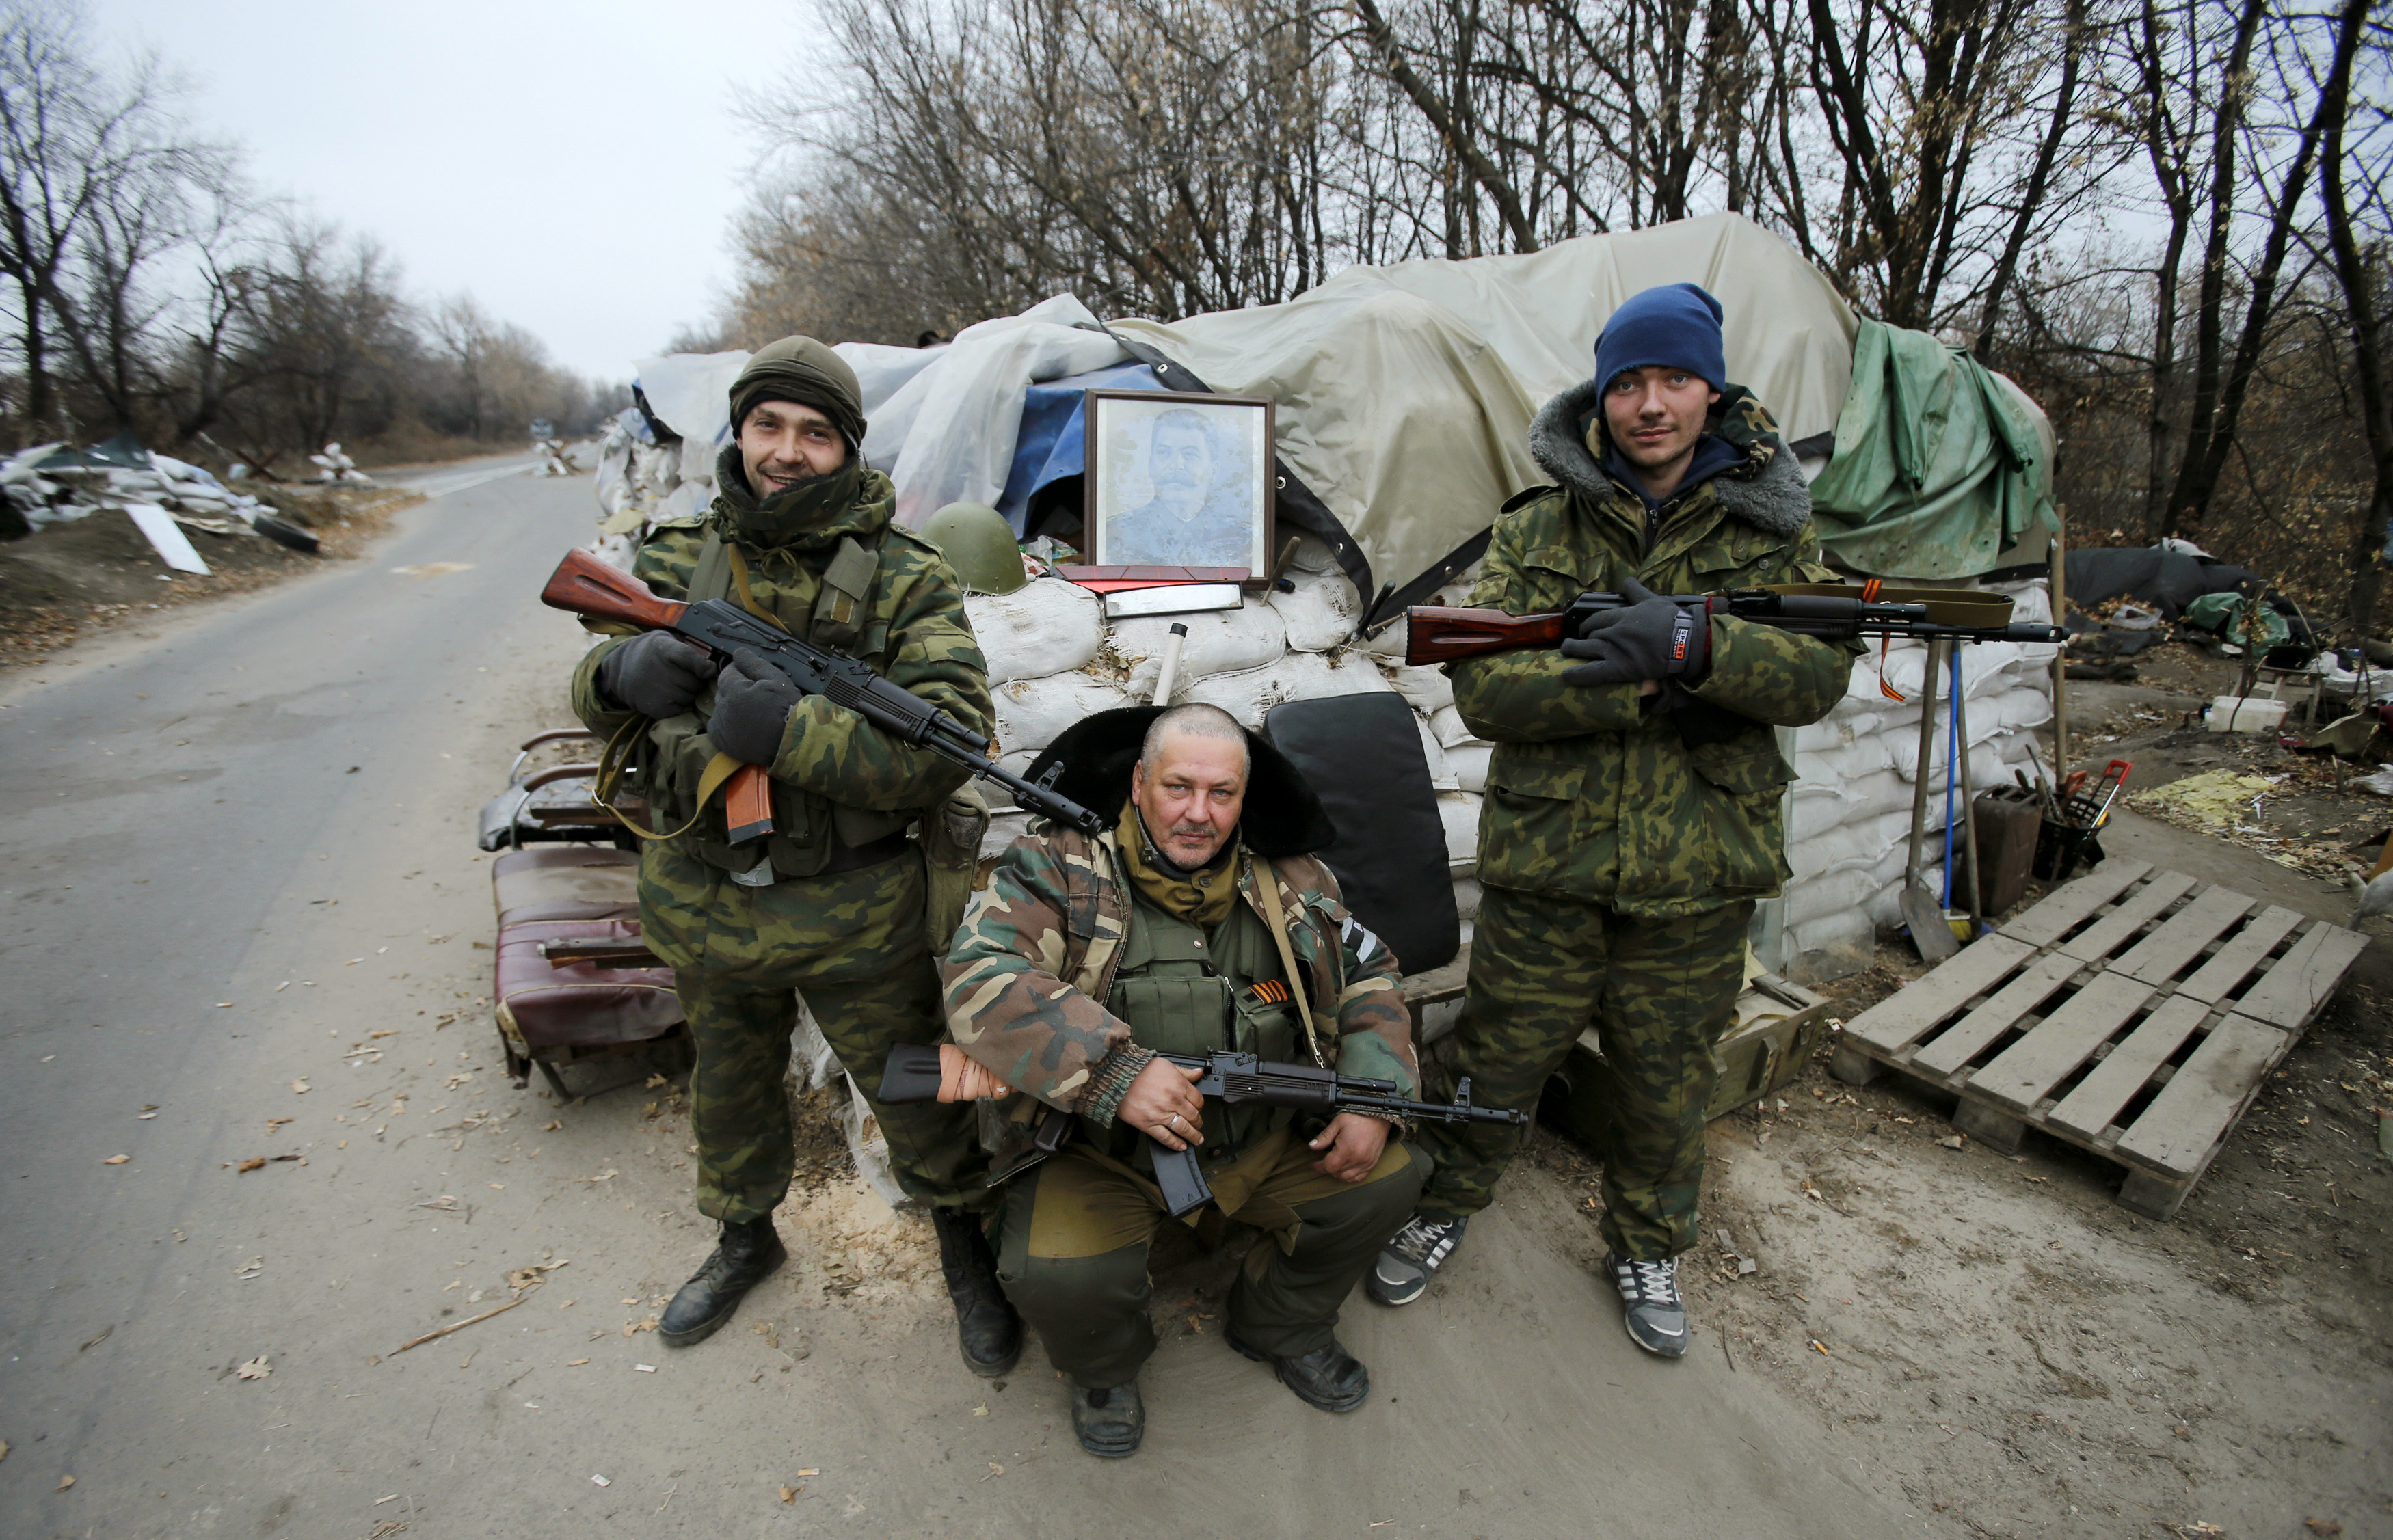 Pro-Russian separatists pose with a picture of Joseph Stalin at checkpoint in the Spartak area near the Sergey Prokofiev International Airport in Donetsk, Nov. 18, 2014.